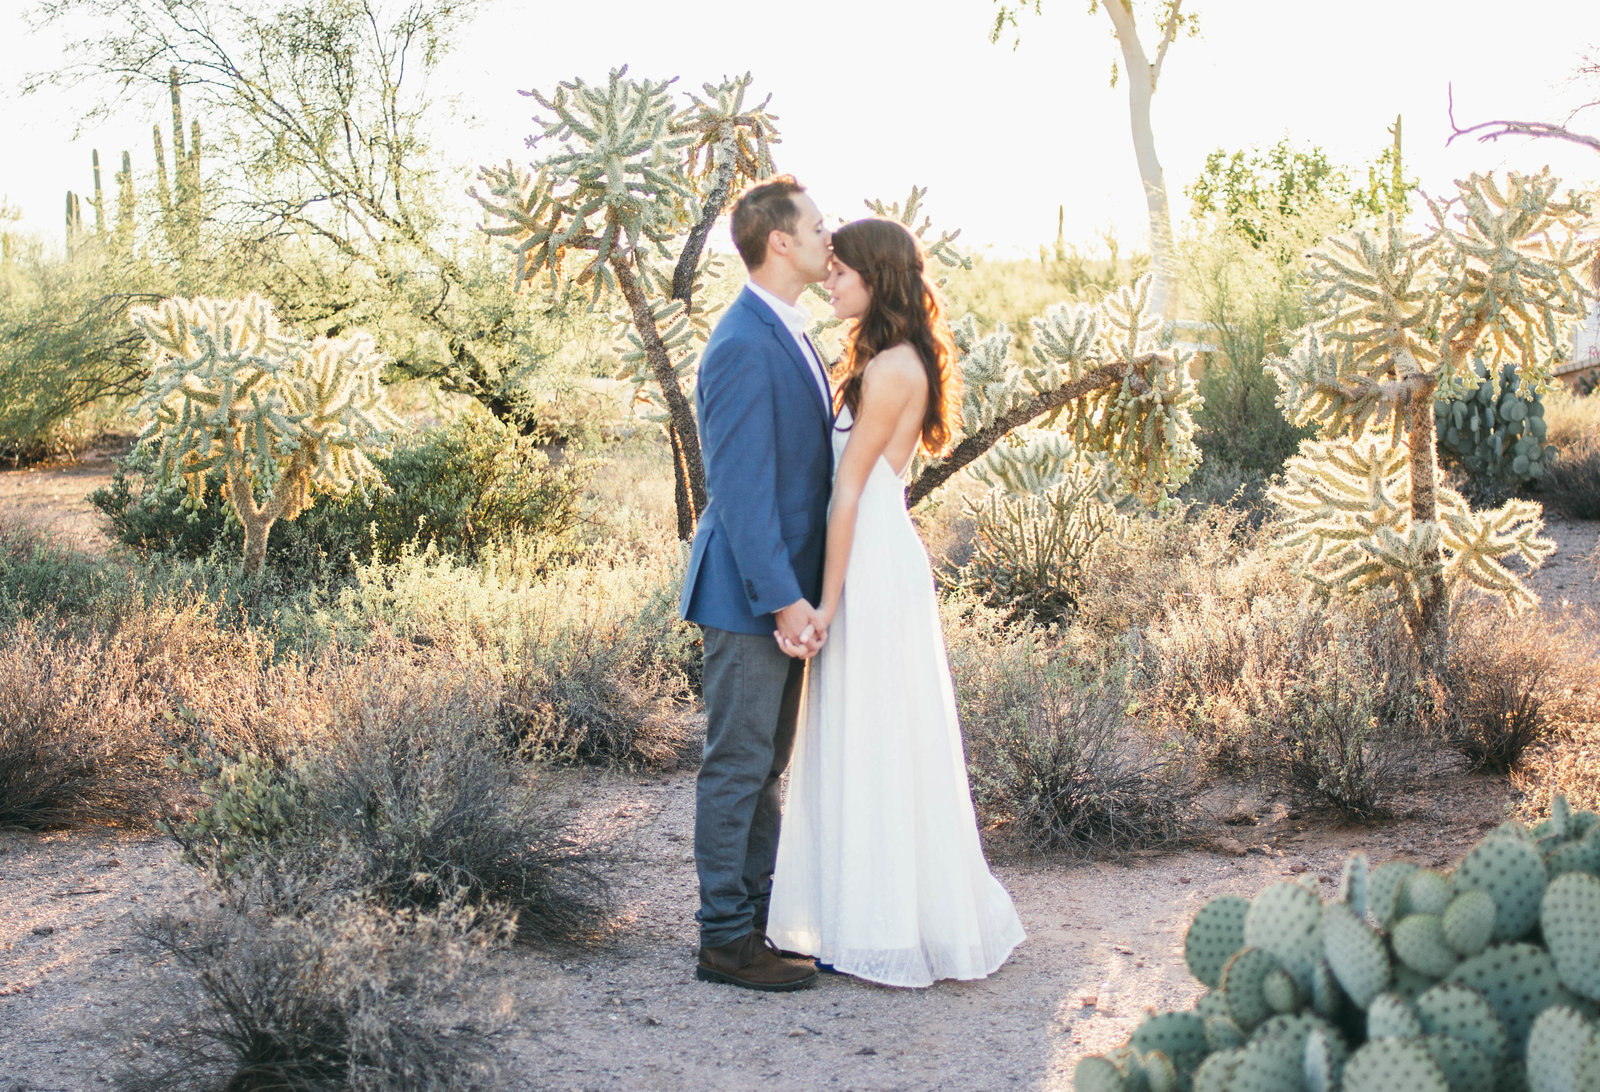 Phoenix wedding photographer Sarah Horne specializes in classic and romantic wedding photography, that conveys emotion and tells a genuine story of each couple.